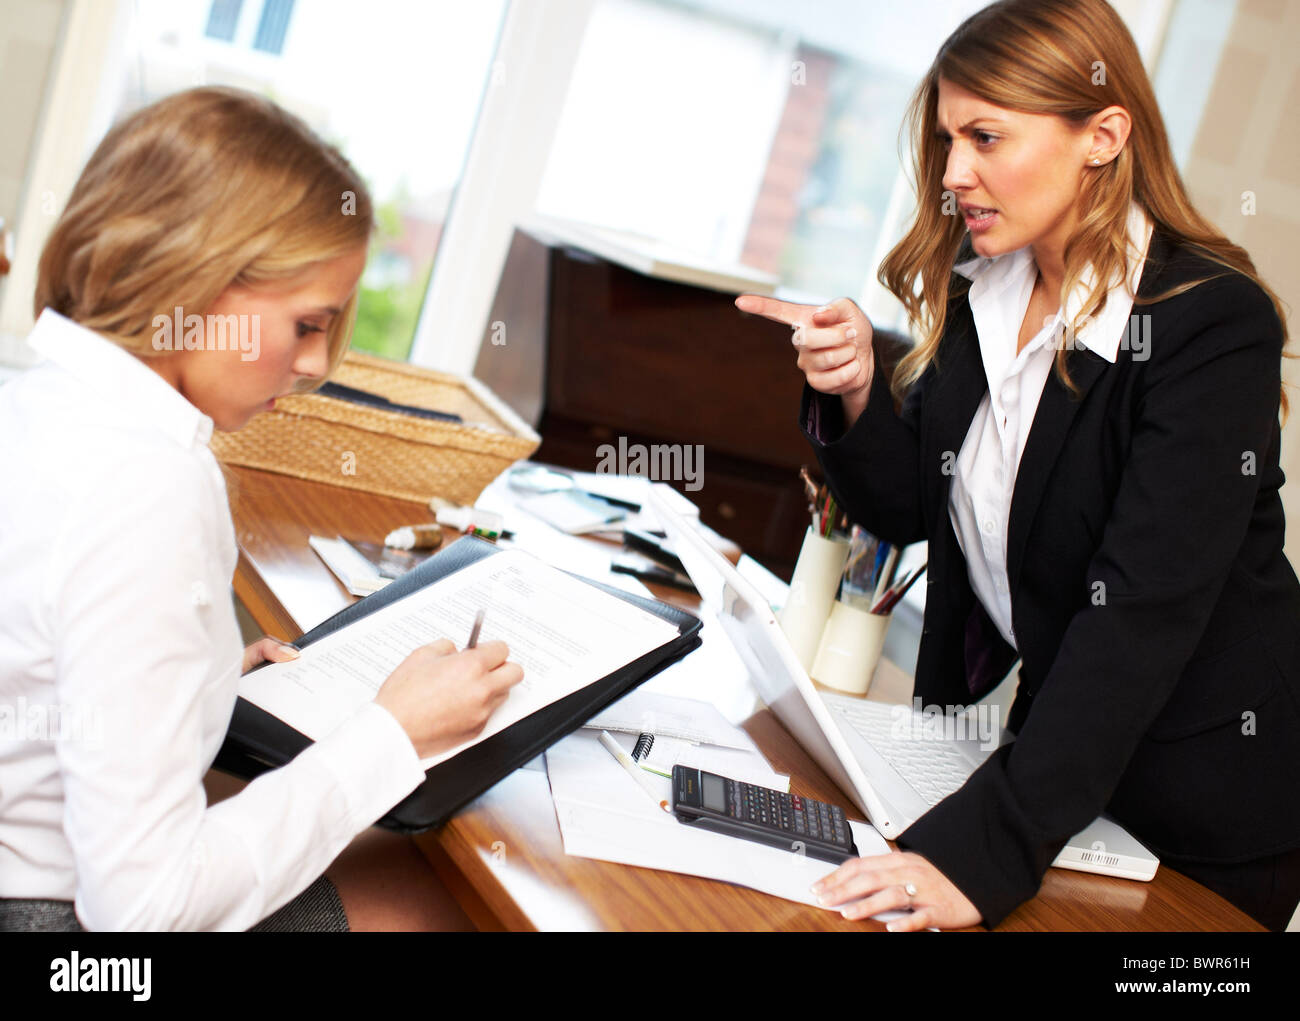 Work colleague intimidating another - Stock Image